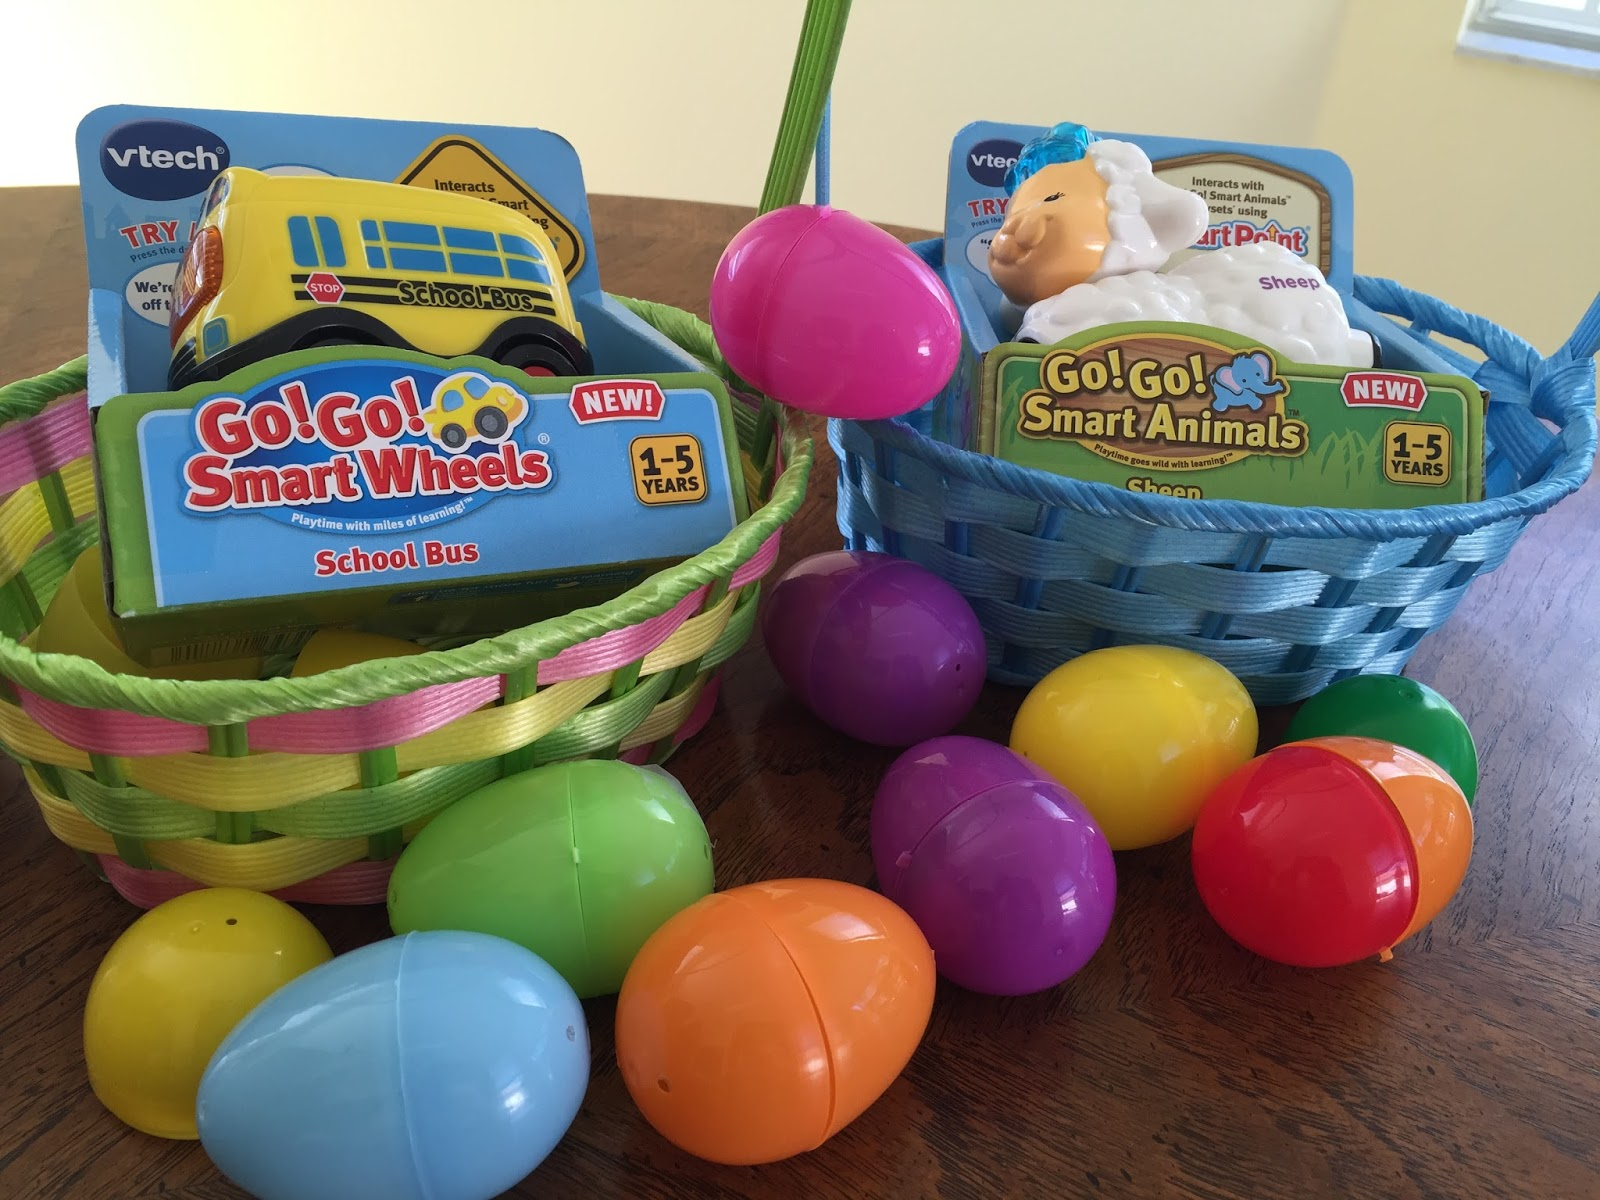 When tara met blog easter basket ideas and easter egg fillers for smart animals are interactive cars that make for a great non candy alternative for only 799 each they are also perfectly sized for easter baskets and negle Image collections